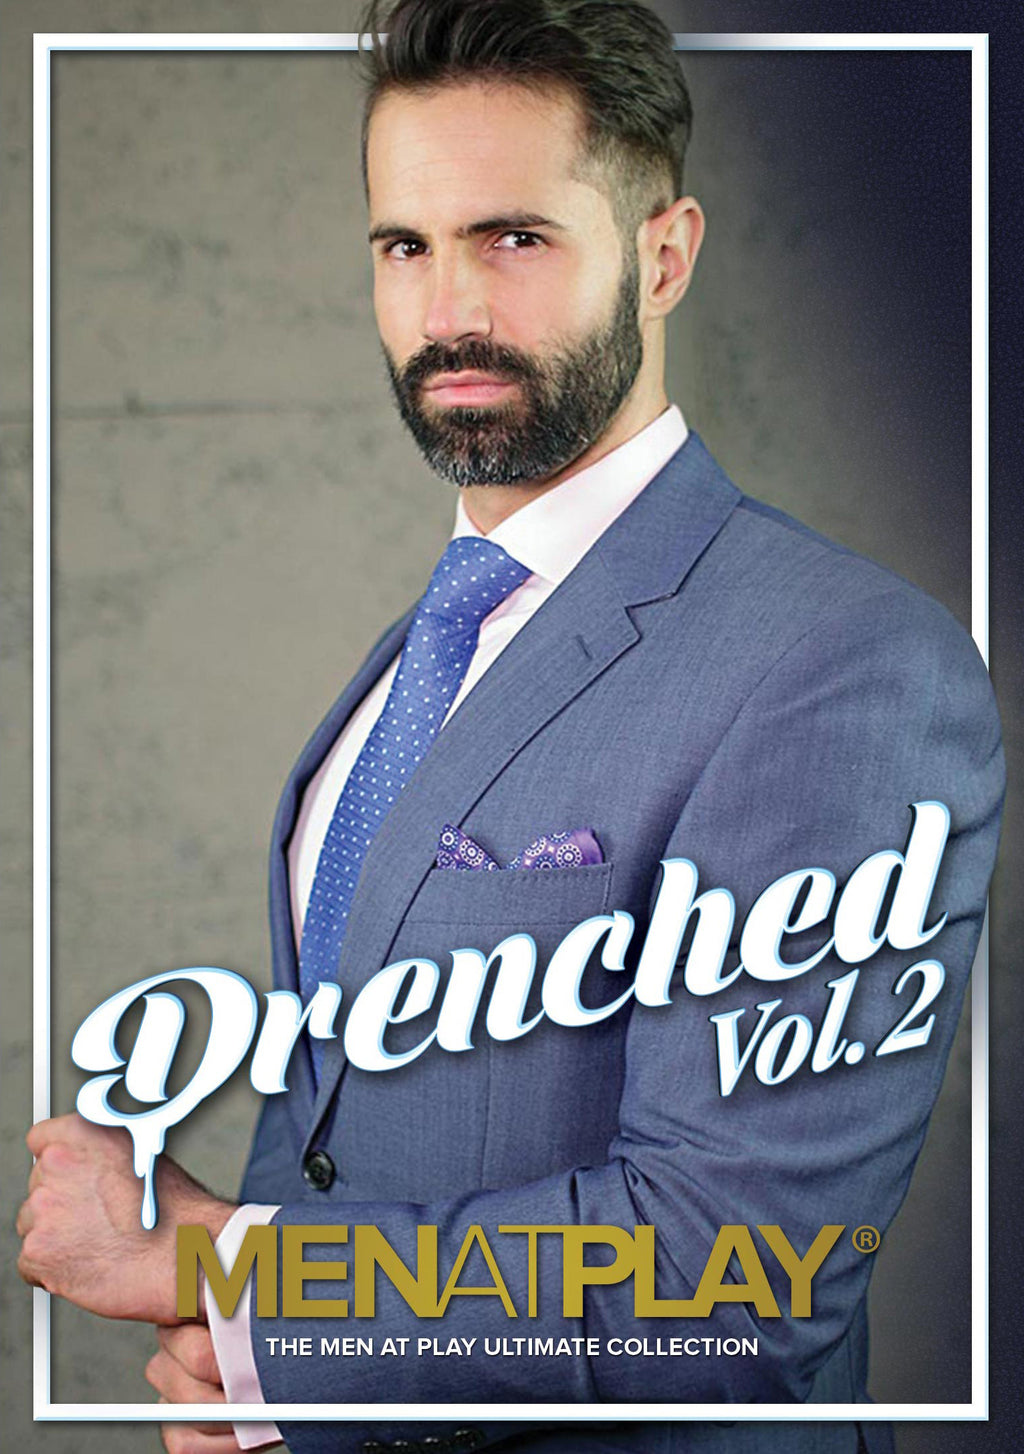 Drenched Vol.2